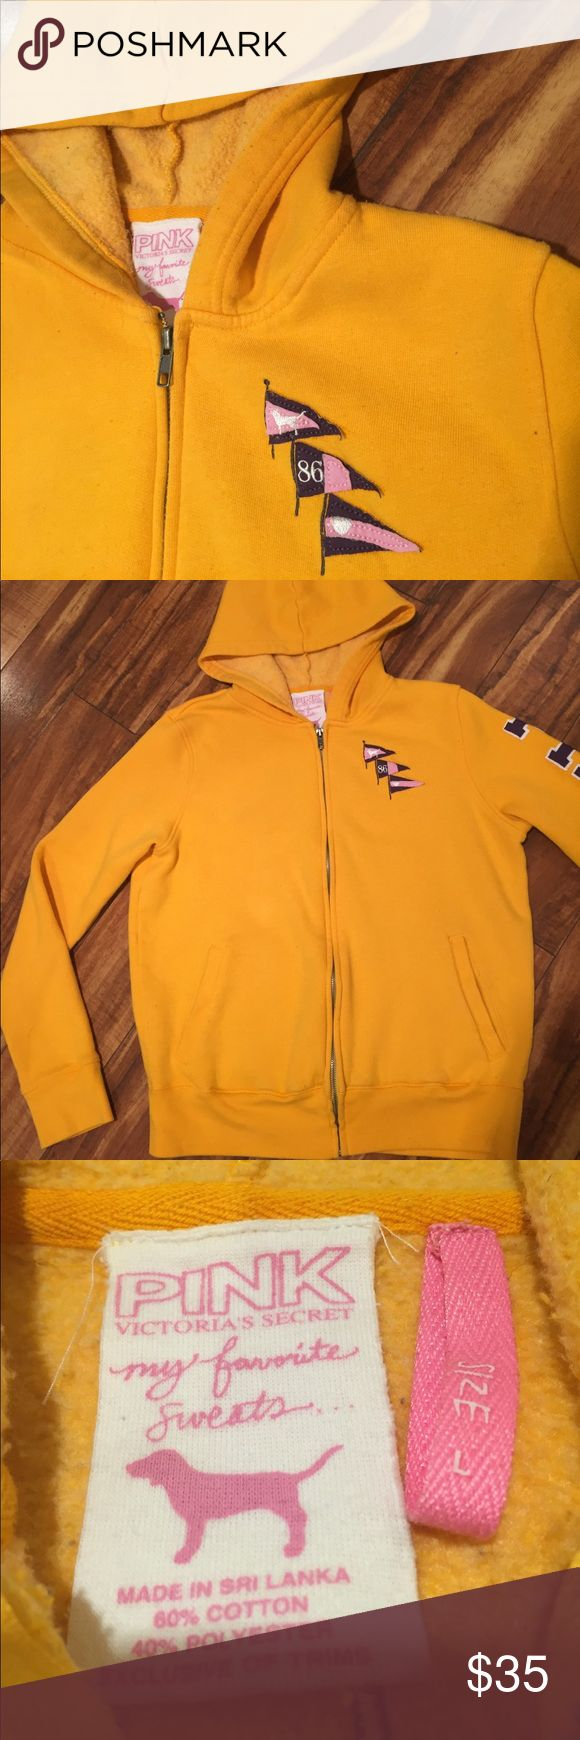 Victoria's Secret SS LOVE PINK zip up hoodie Yellow zip up hoodie by Victoria's Secret. SS LOVE PINK with sailing flags on back.  Some pilling on inside, small stain at back of hood which is not visible when worn. PINK Victoria's Secret Jackets & Coats